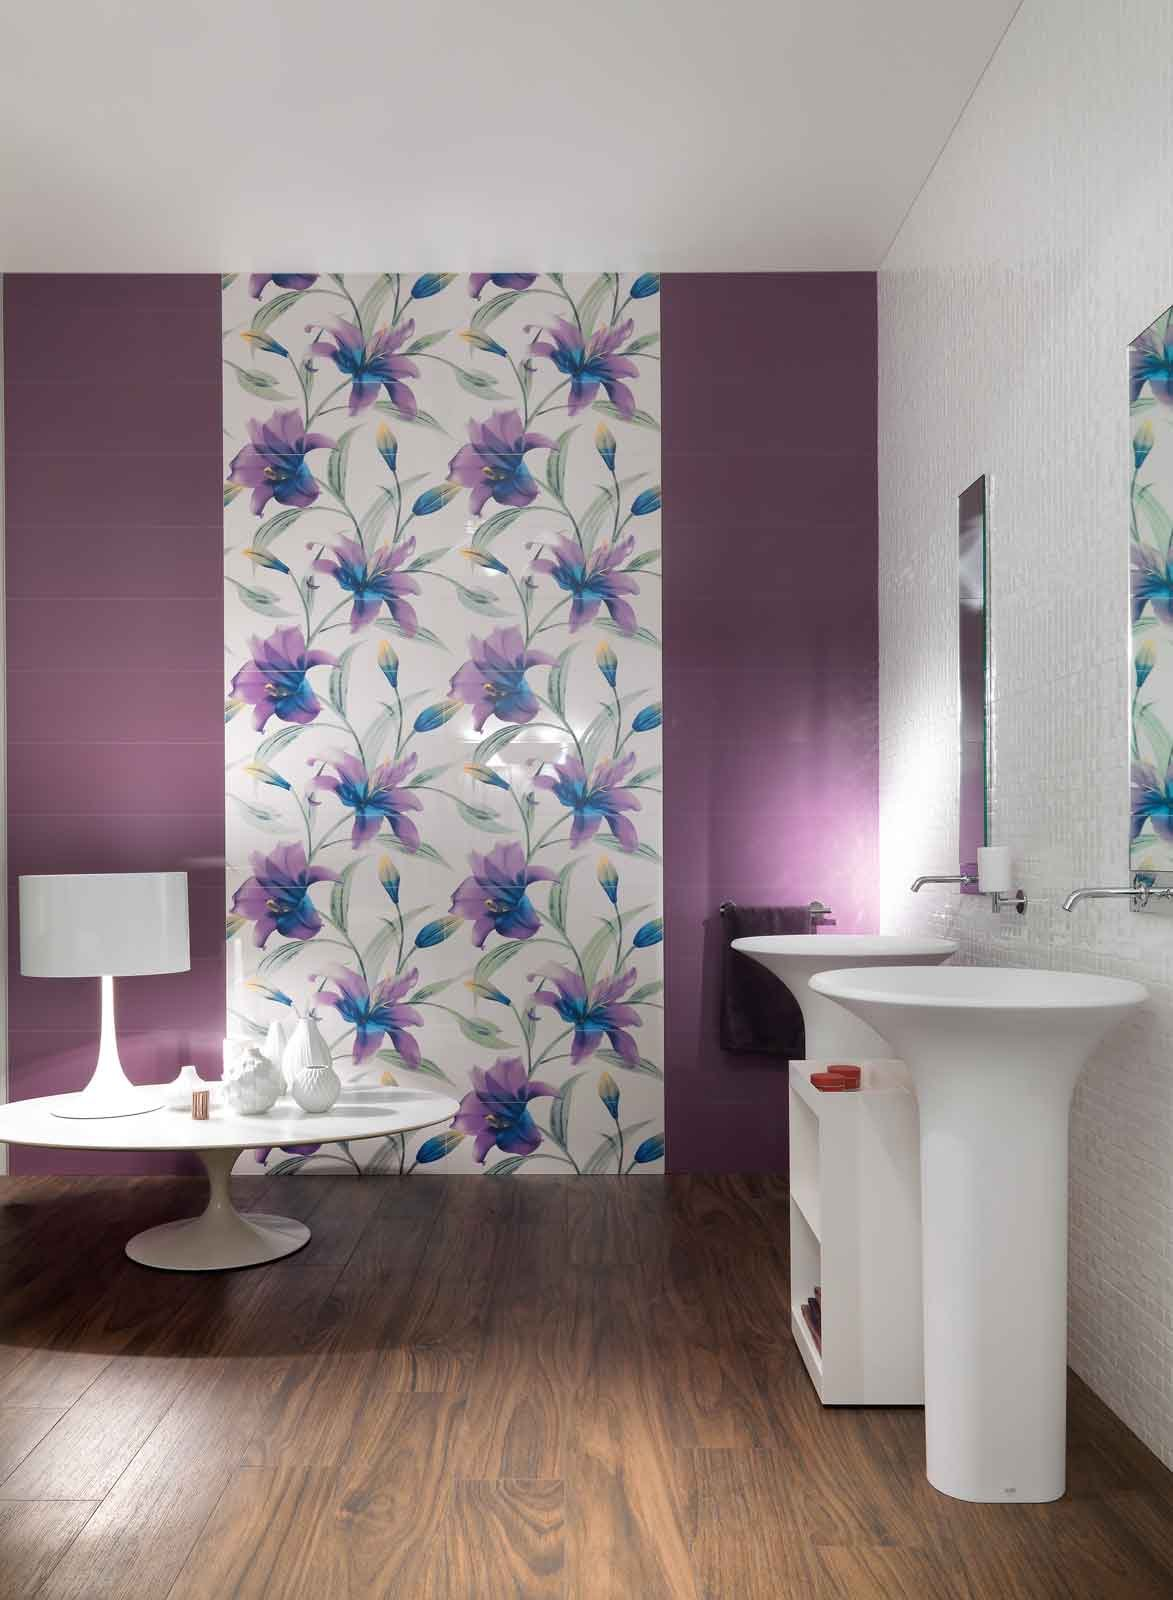 Piastrelle Bagno Con Fiori Pictures to pin on Pinterest